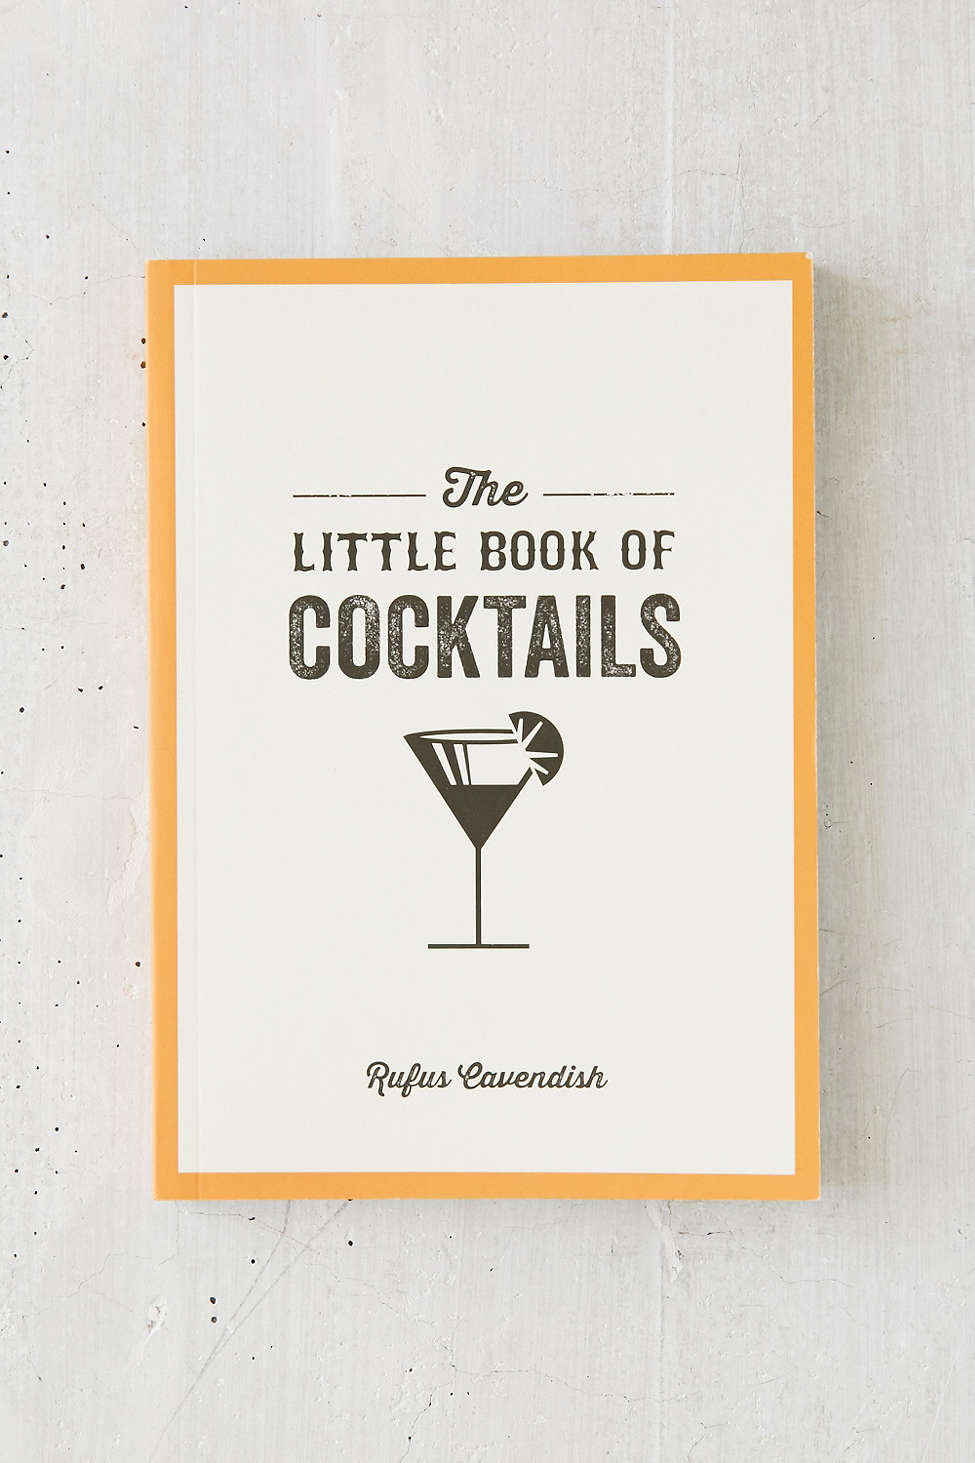 The Little Book of Cocktails $9.95